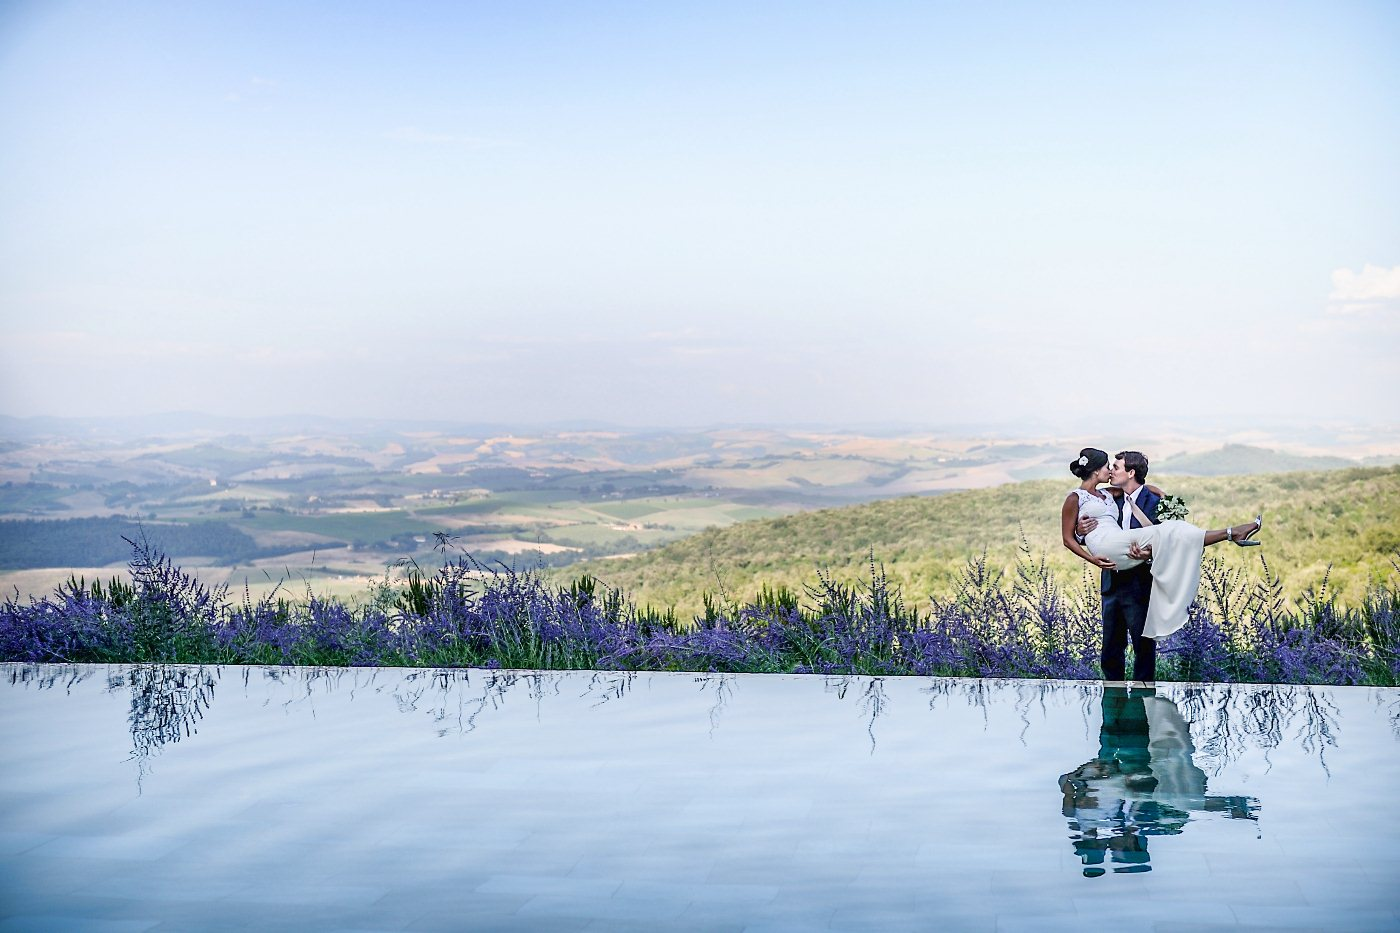 wedding photo castiglion del bosco montalcino_16.jpg